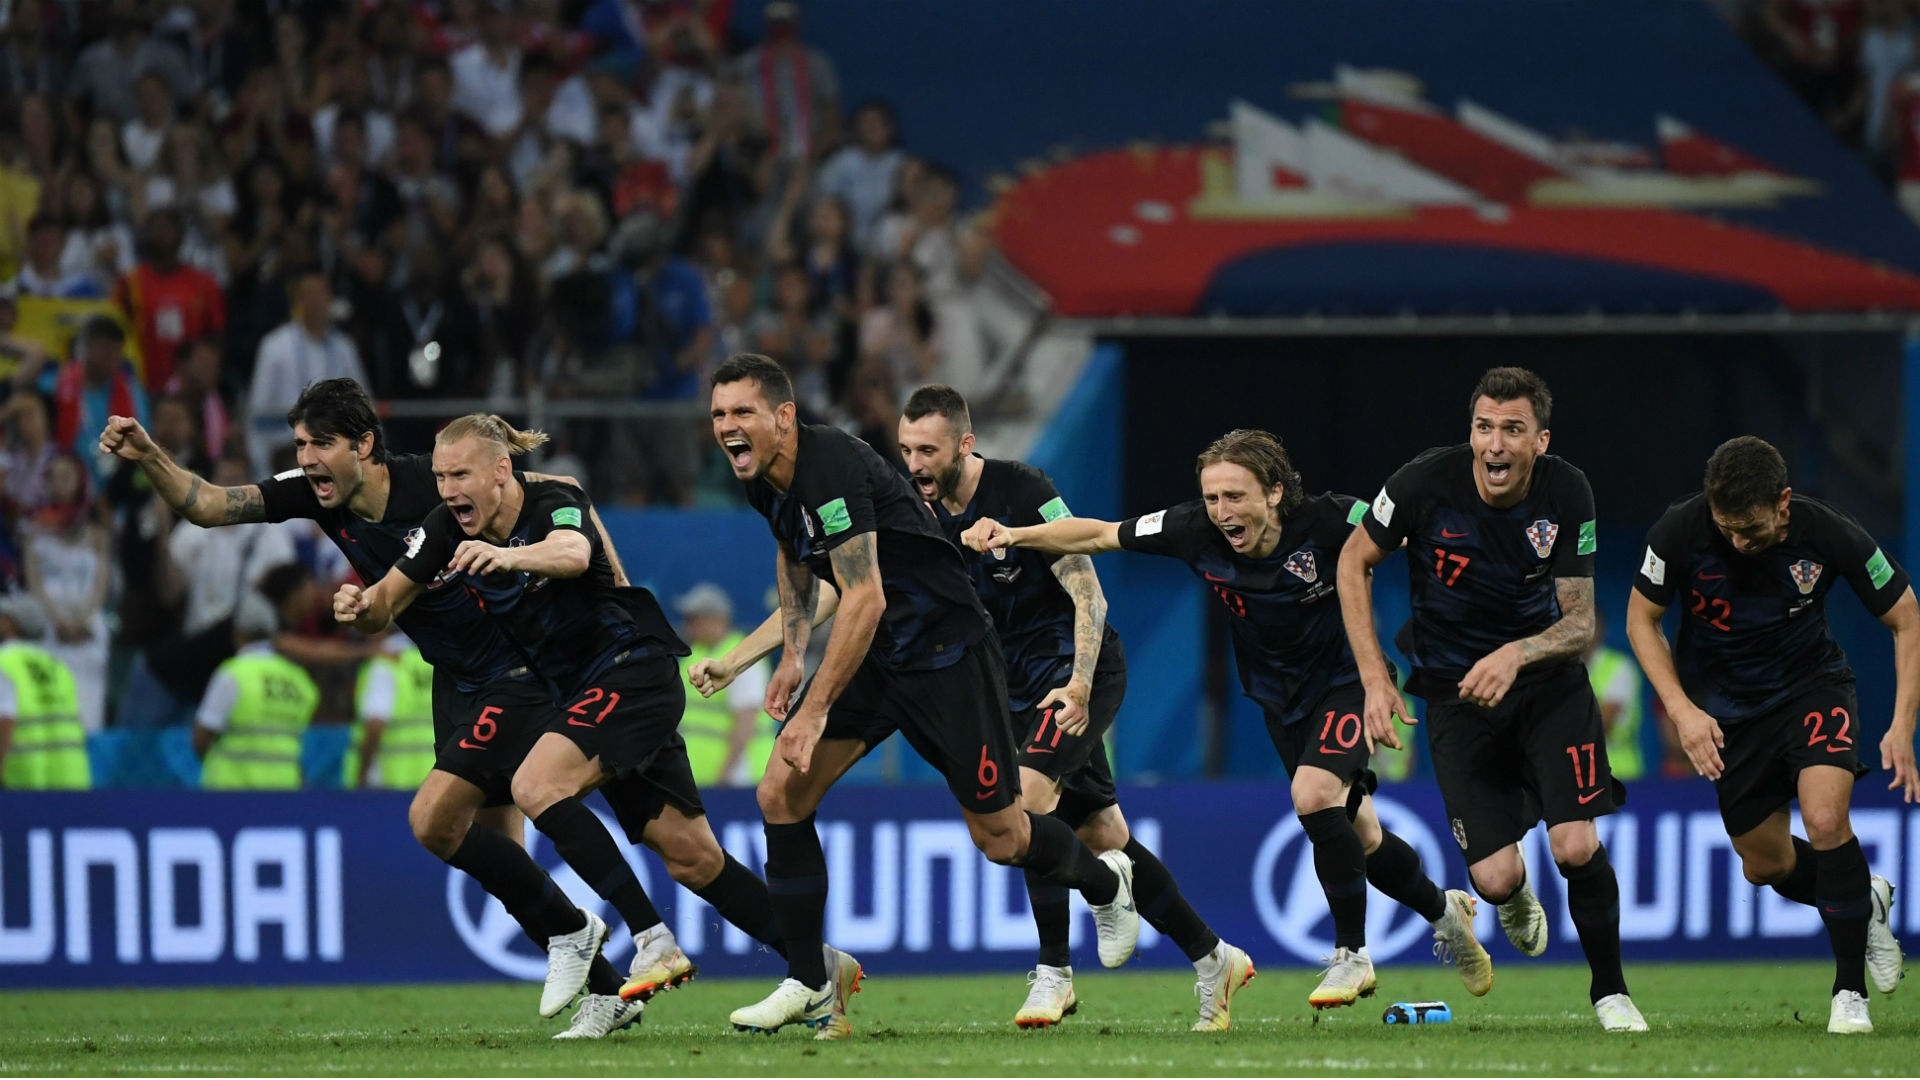 Croatia vs. Russia score: Highlights from World Cup quarterfinals